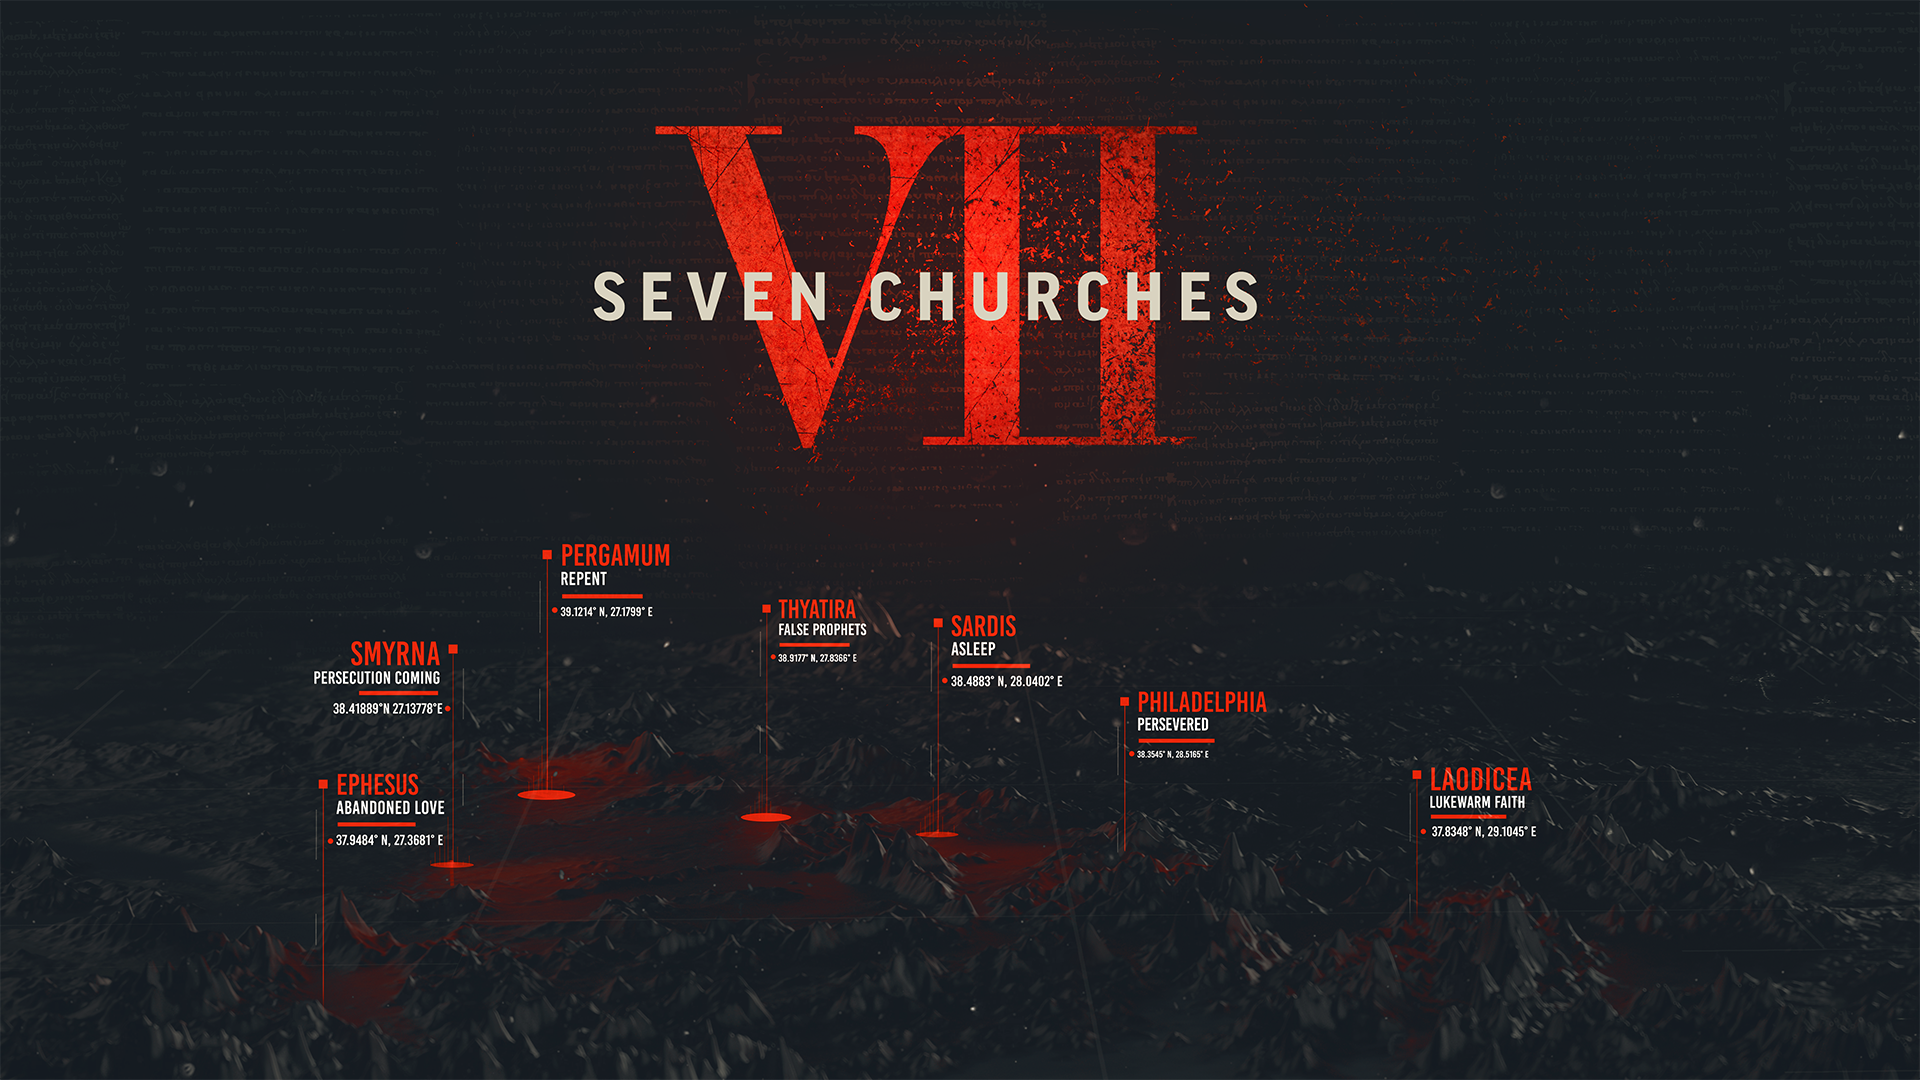 VII: Seven Churches